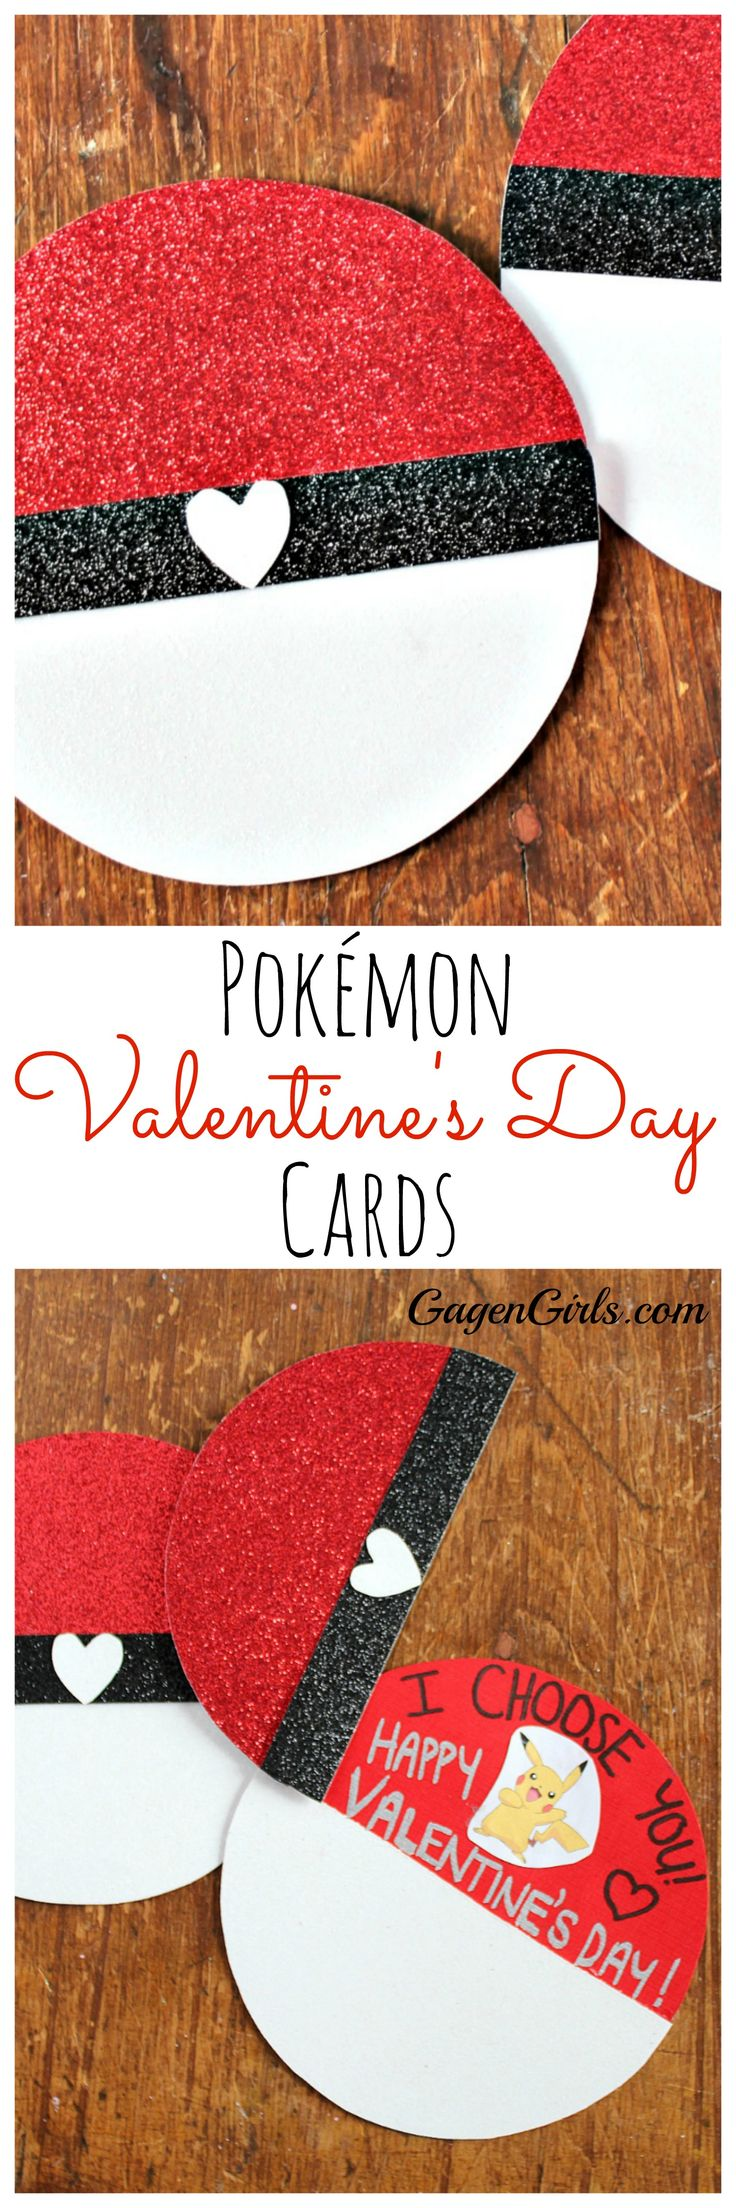 These adorable Pokémon Valentine's Day Cards are a snap to make! Only 15 mi...